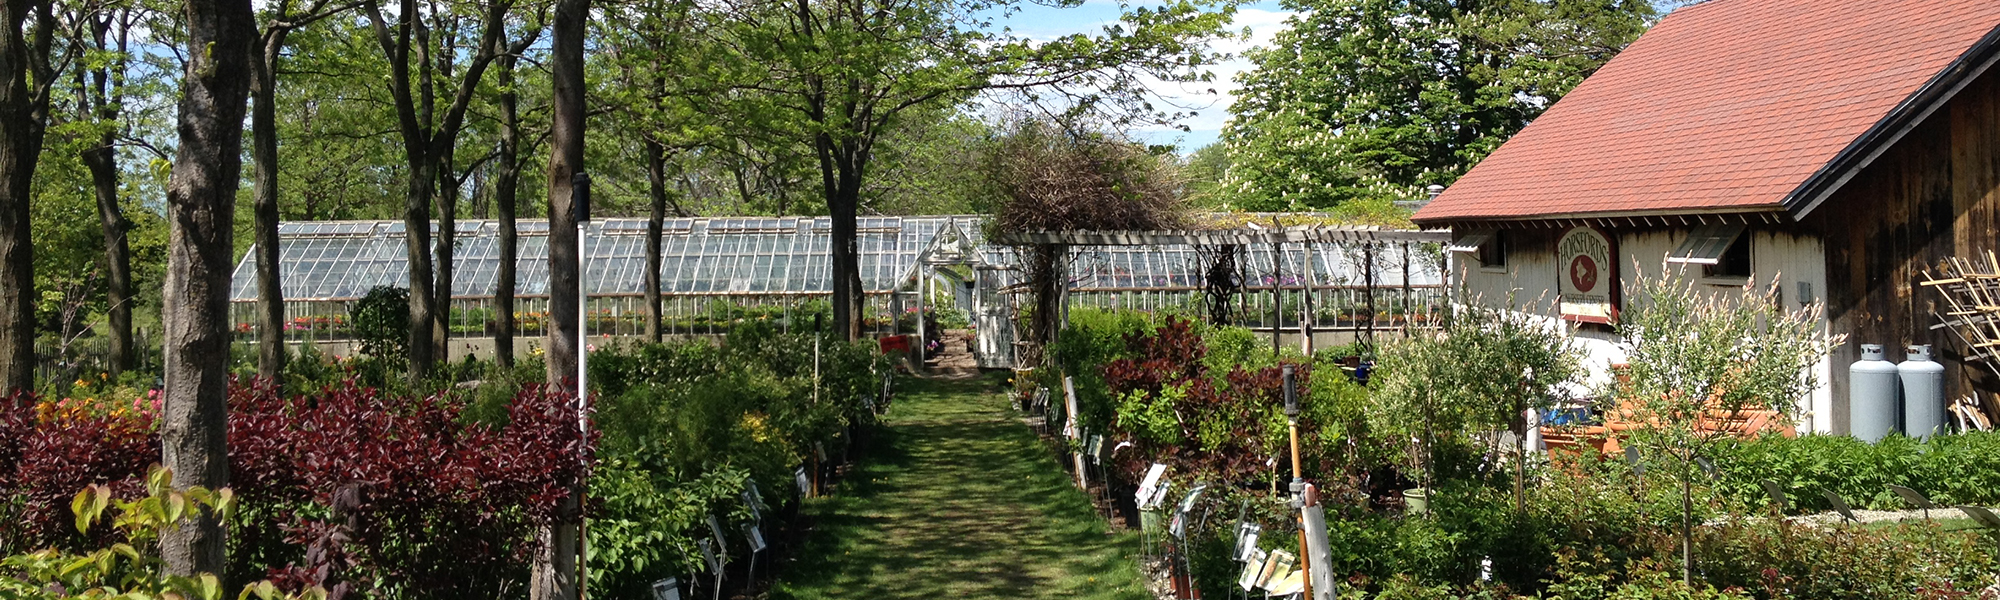 Horsfords outdoor Garden Center and glass greenhouses